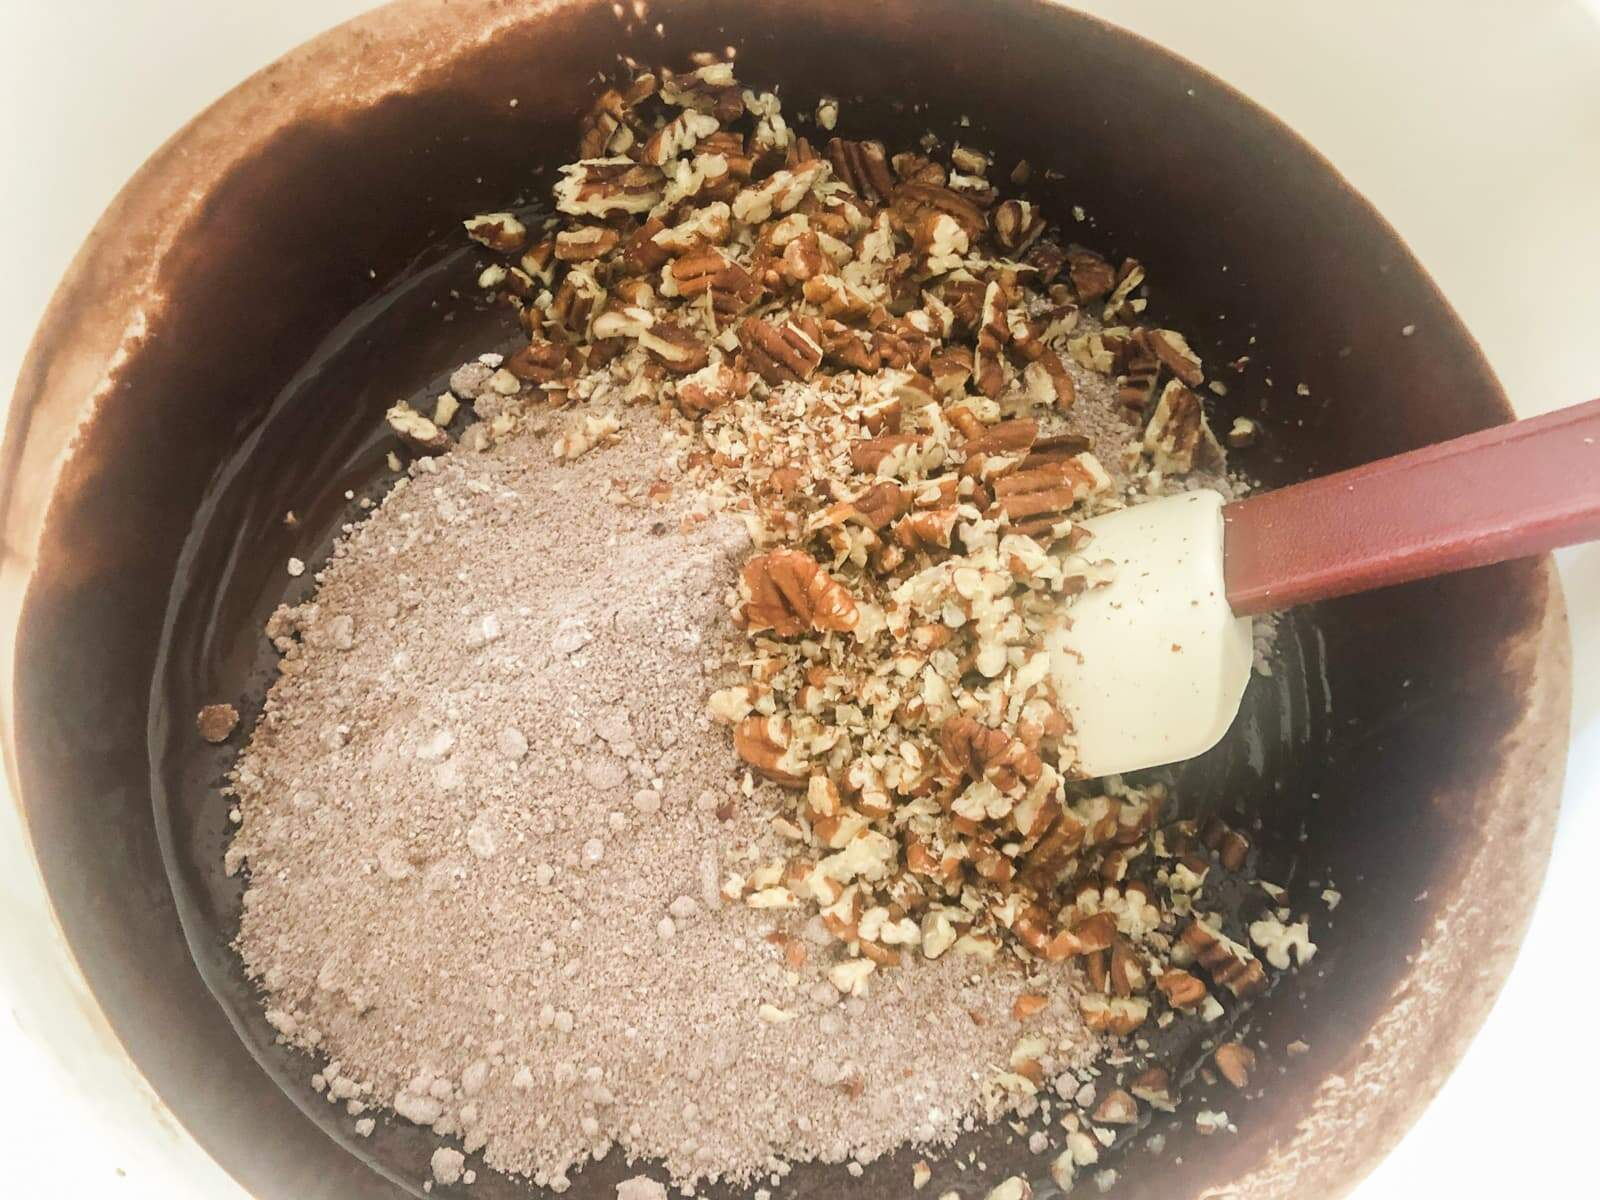 W white plastic bowl with melted chocolate and butter and flour, cocoa powder and chopped hazelnuts being added and a spatula ready to mix to make brownies.